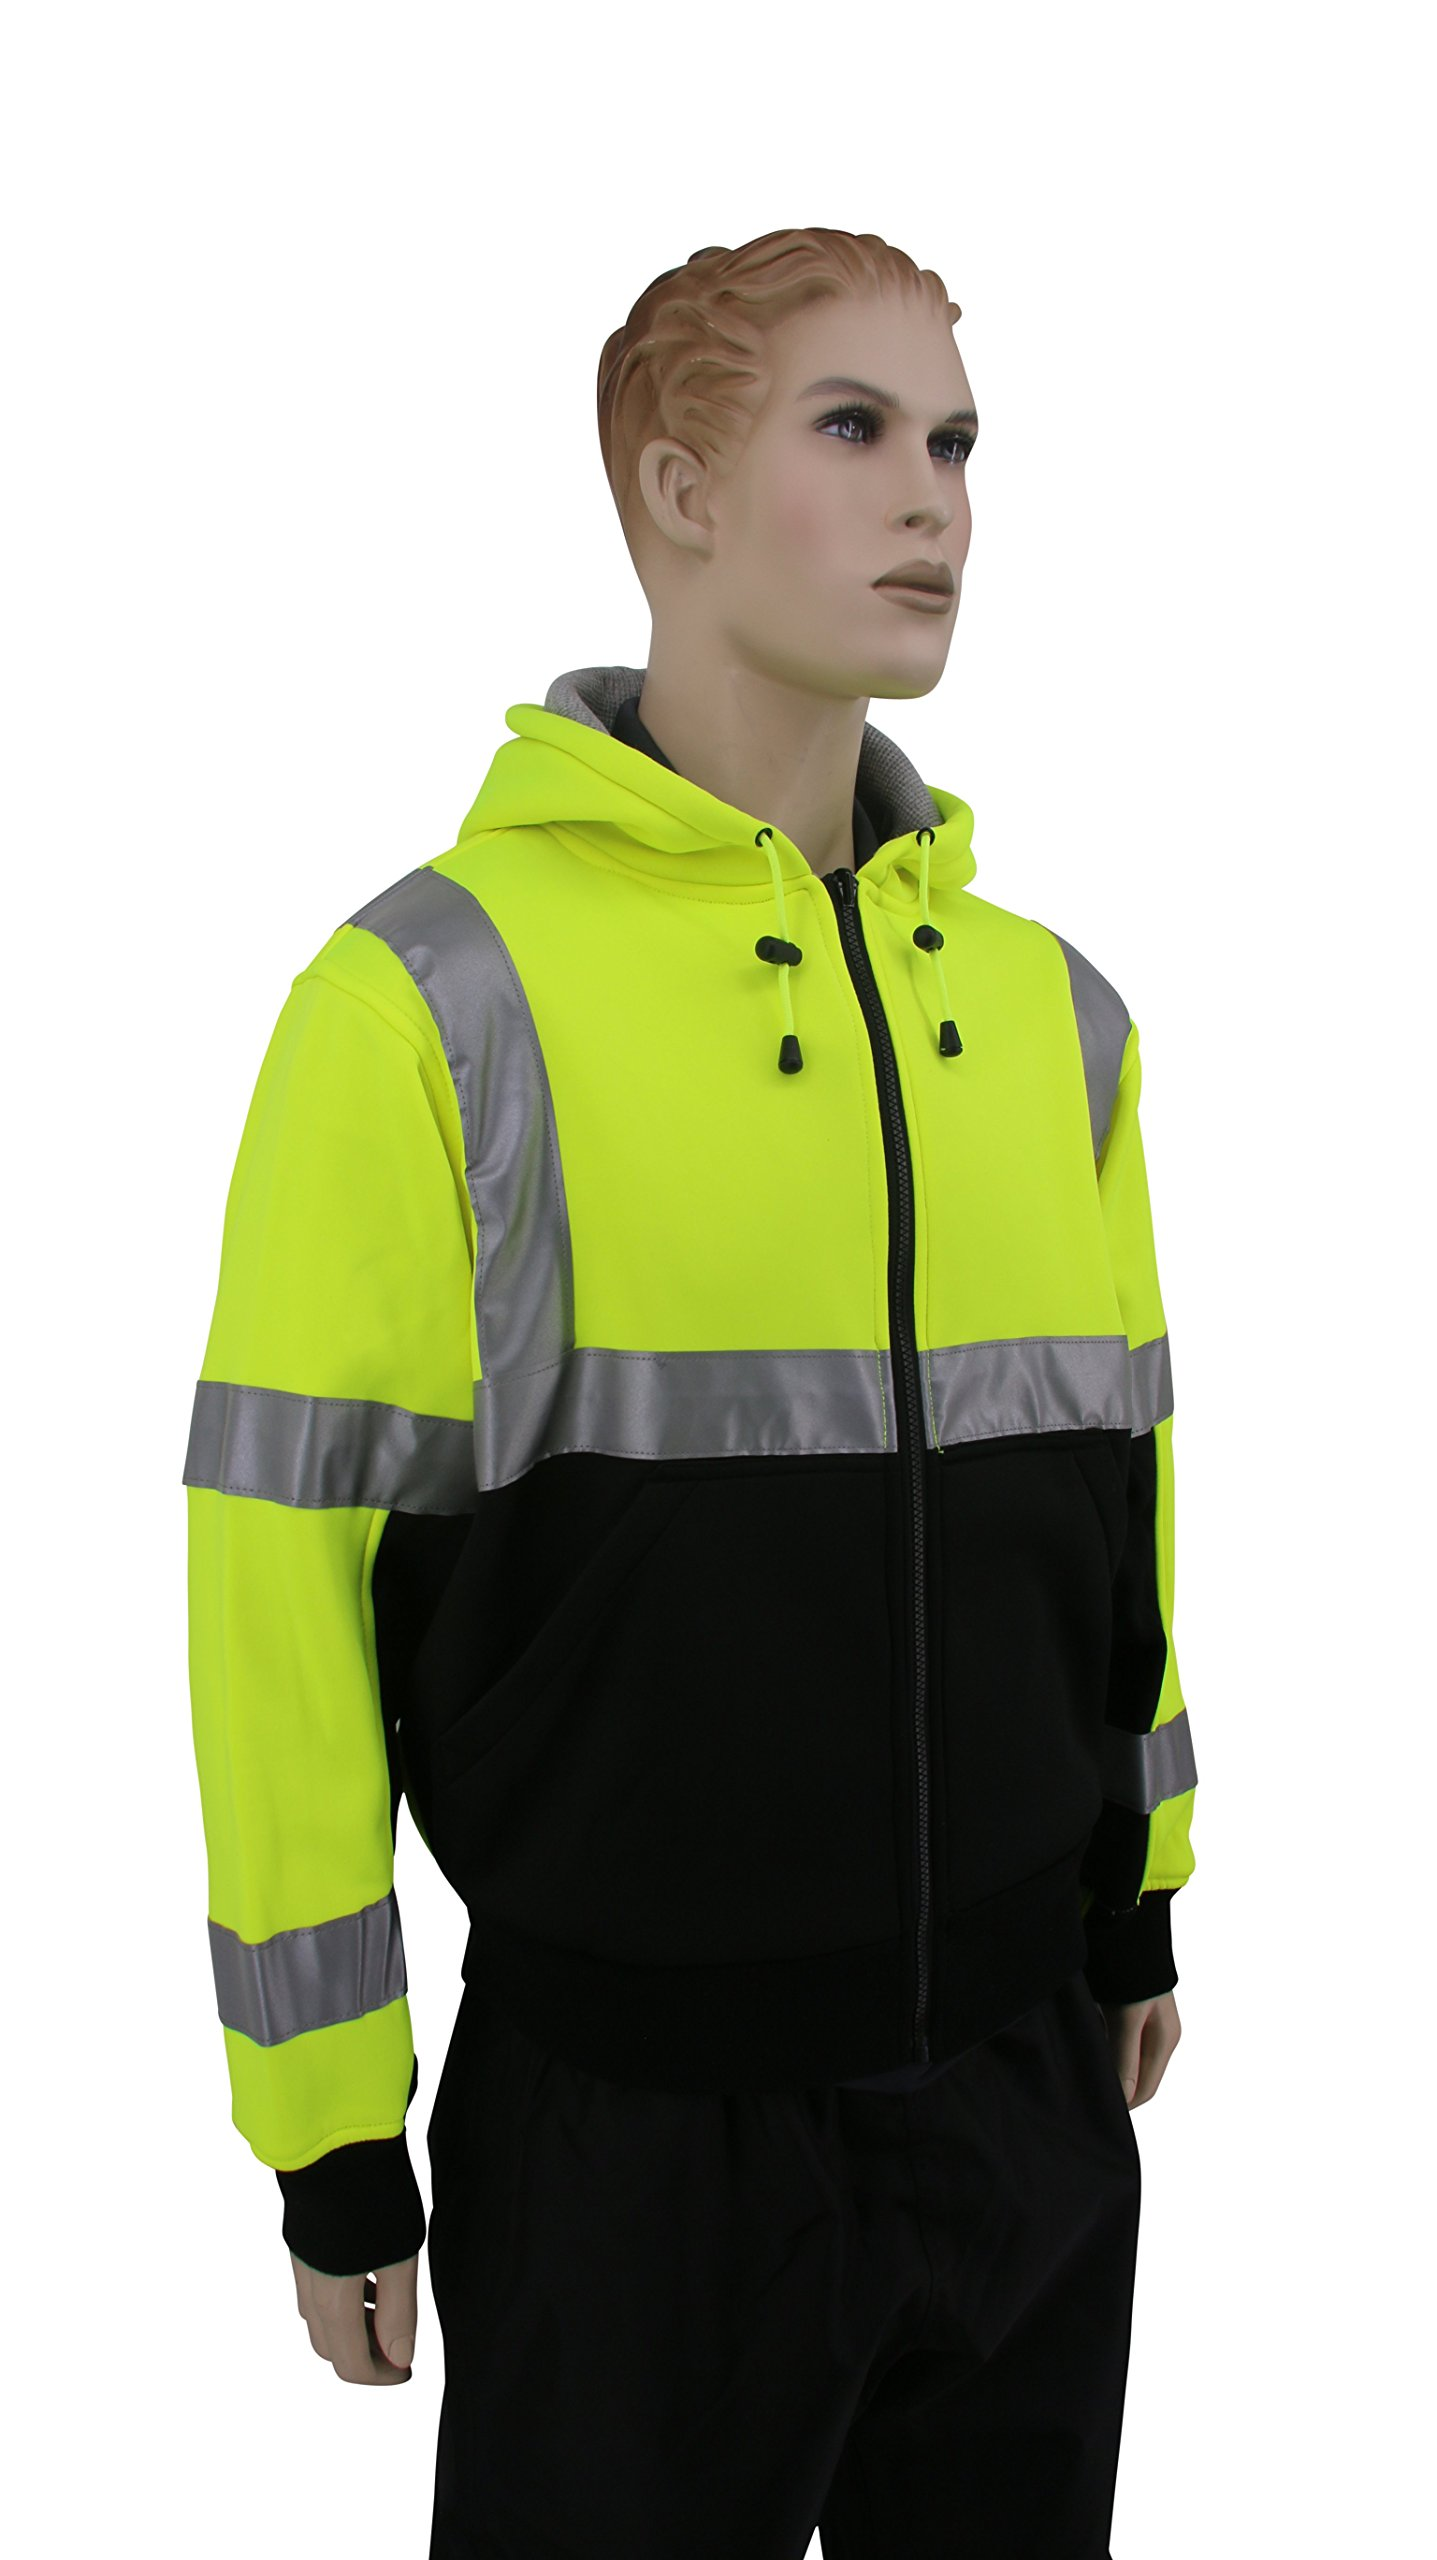 Brite Safety Style 5010 Hi Viz Sweatshirts for Men or Women   Safety Hi Vis Hoodie, 2-Tone Sweatshirt   Thermal Liner, Full Zip 16oz, with 3M Reflective Tape   ANSI 107 Class 3 (4XL) by Brite Safety (Image #5)